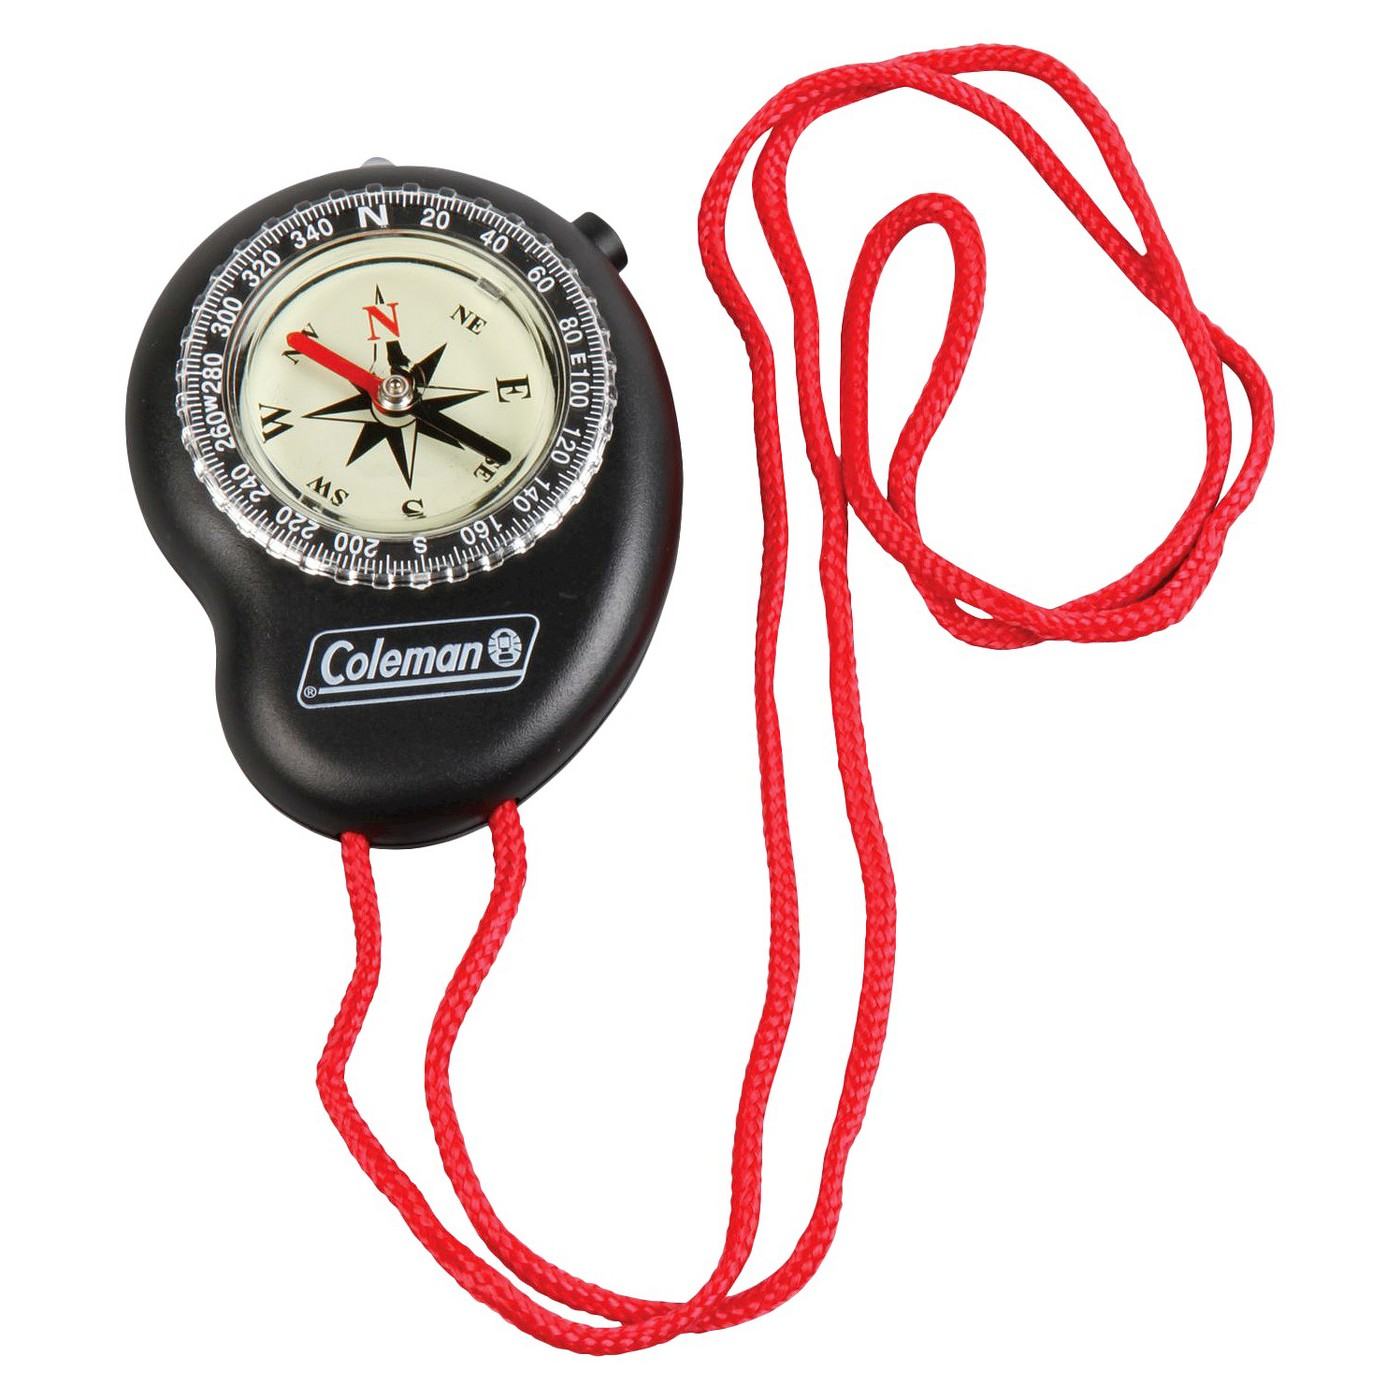 Cool affordable gifts under $15: Coleman Compass